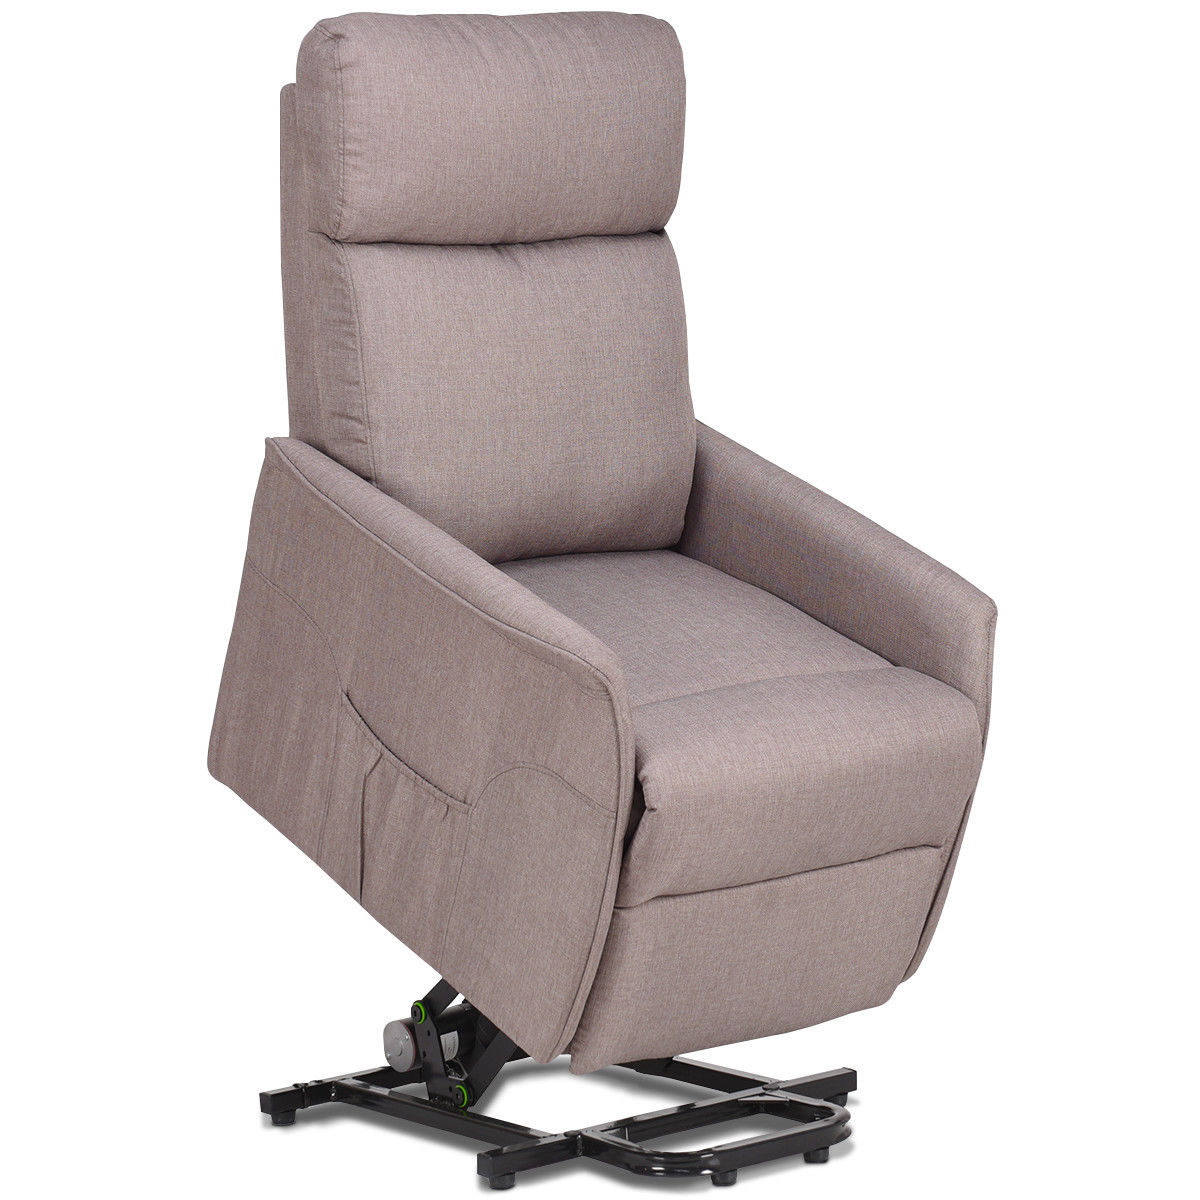 home meridian lift chair repair swivel leg caps recliners walmart com product image costway electric power recliner sofa fabric padded seat living room w remote